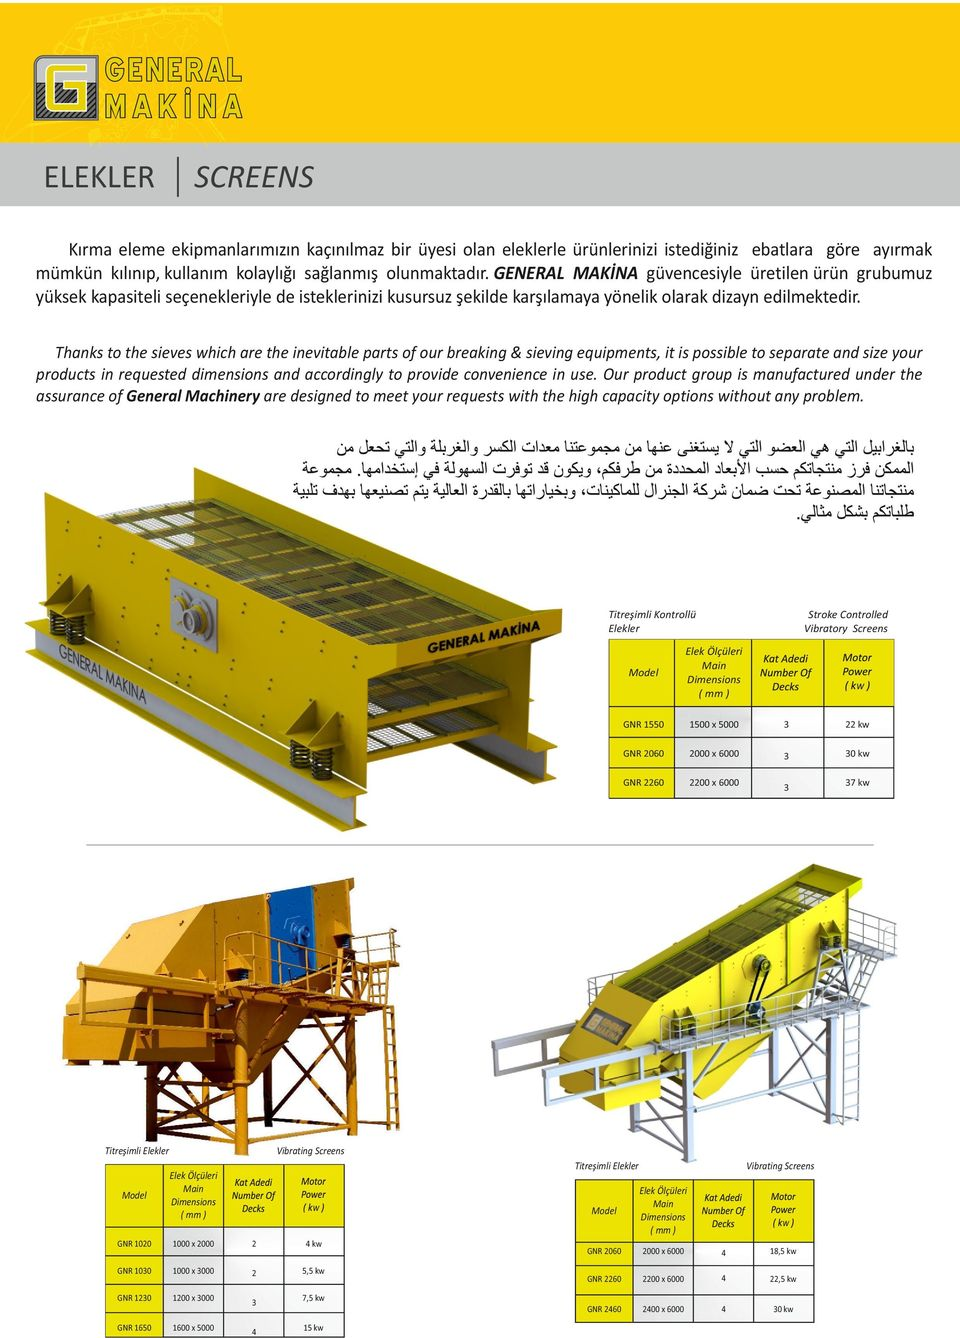 Thanks to the sieves which are the inevitable parts of our breaking & sieving equipments, it is possible to separate and size your products in requested dimensions and accordingly to provide